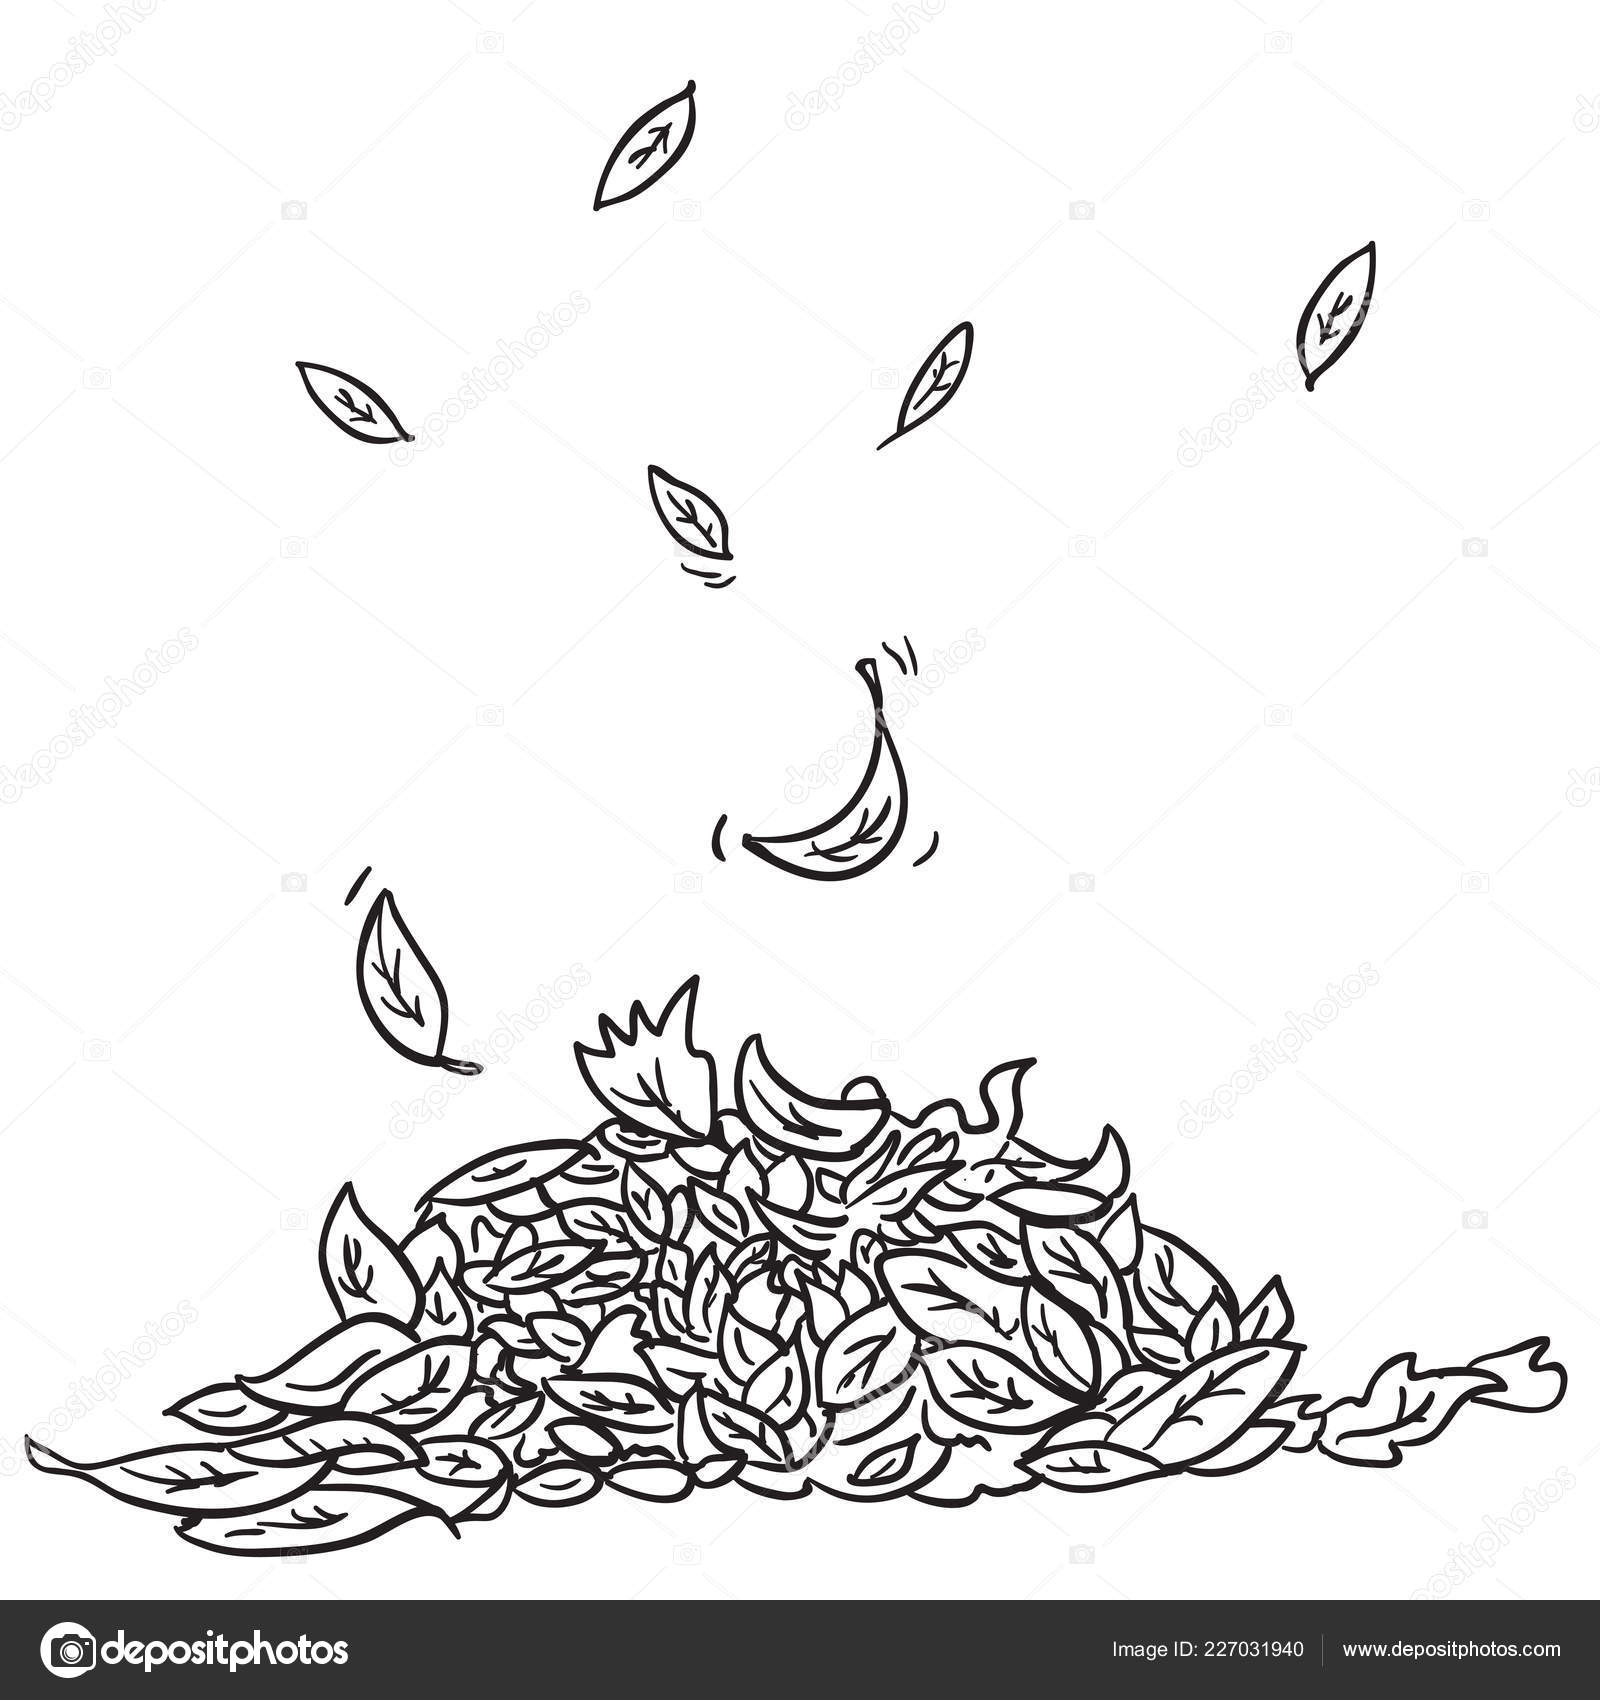 Vector Leaves Cartoon Black And White Black White Pile Leaves Cartoon Illustration Stock Vector C Ainsel 227031940